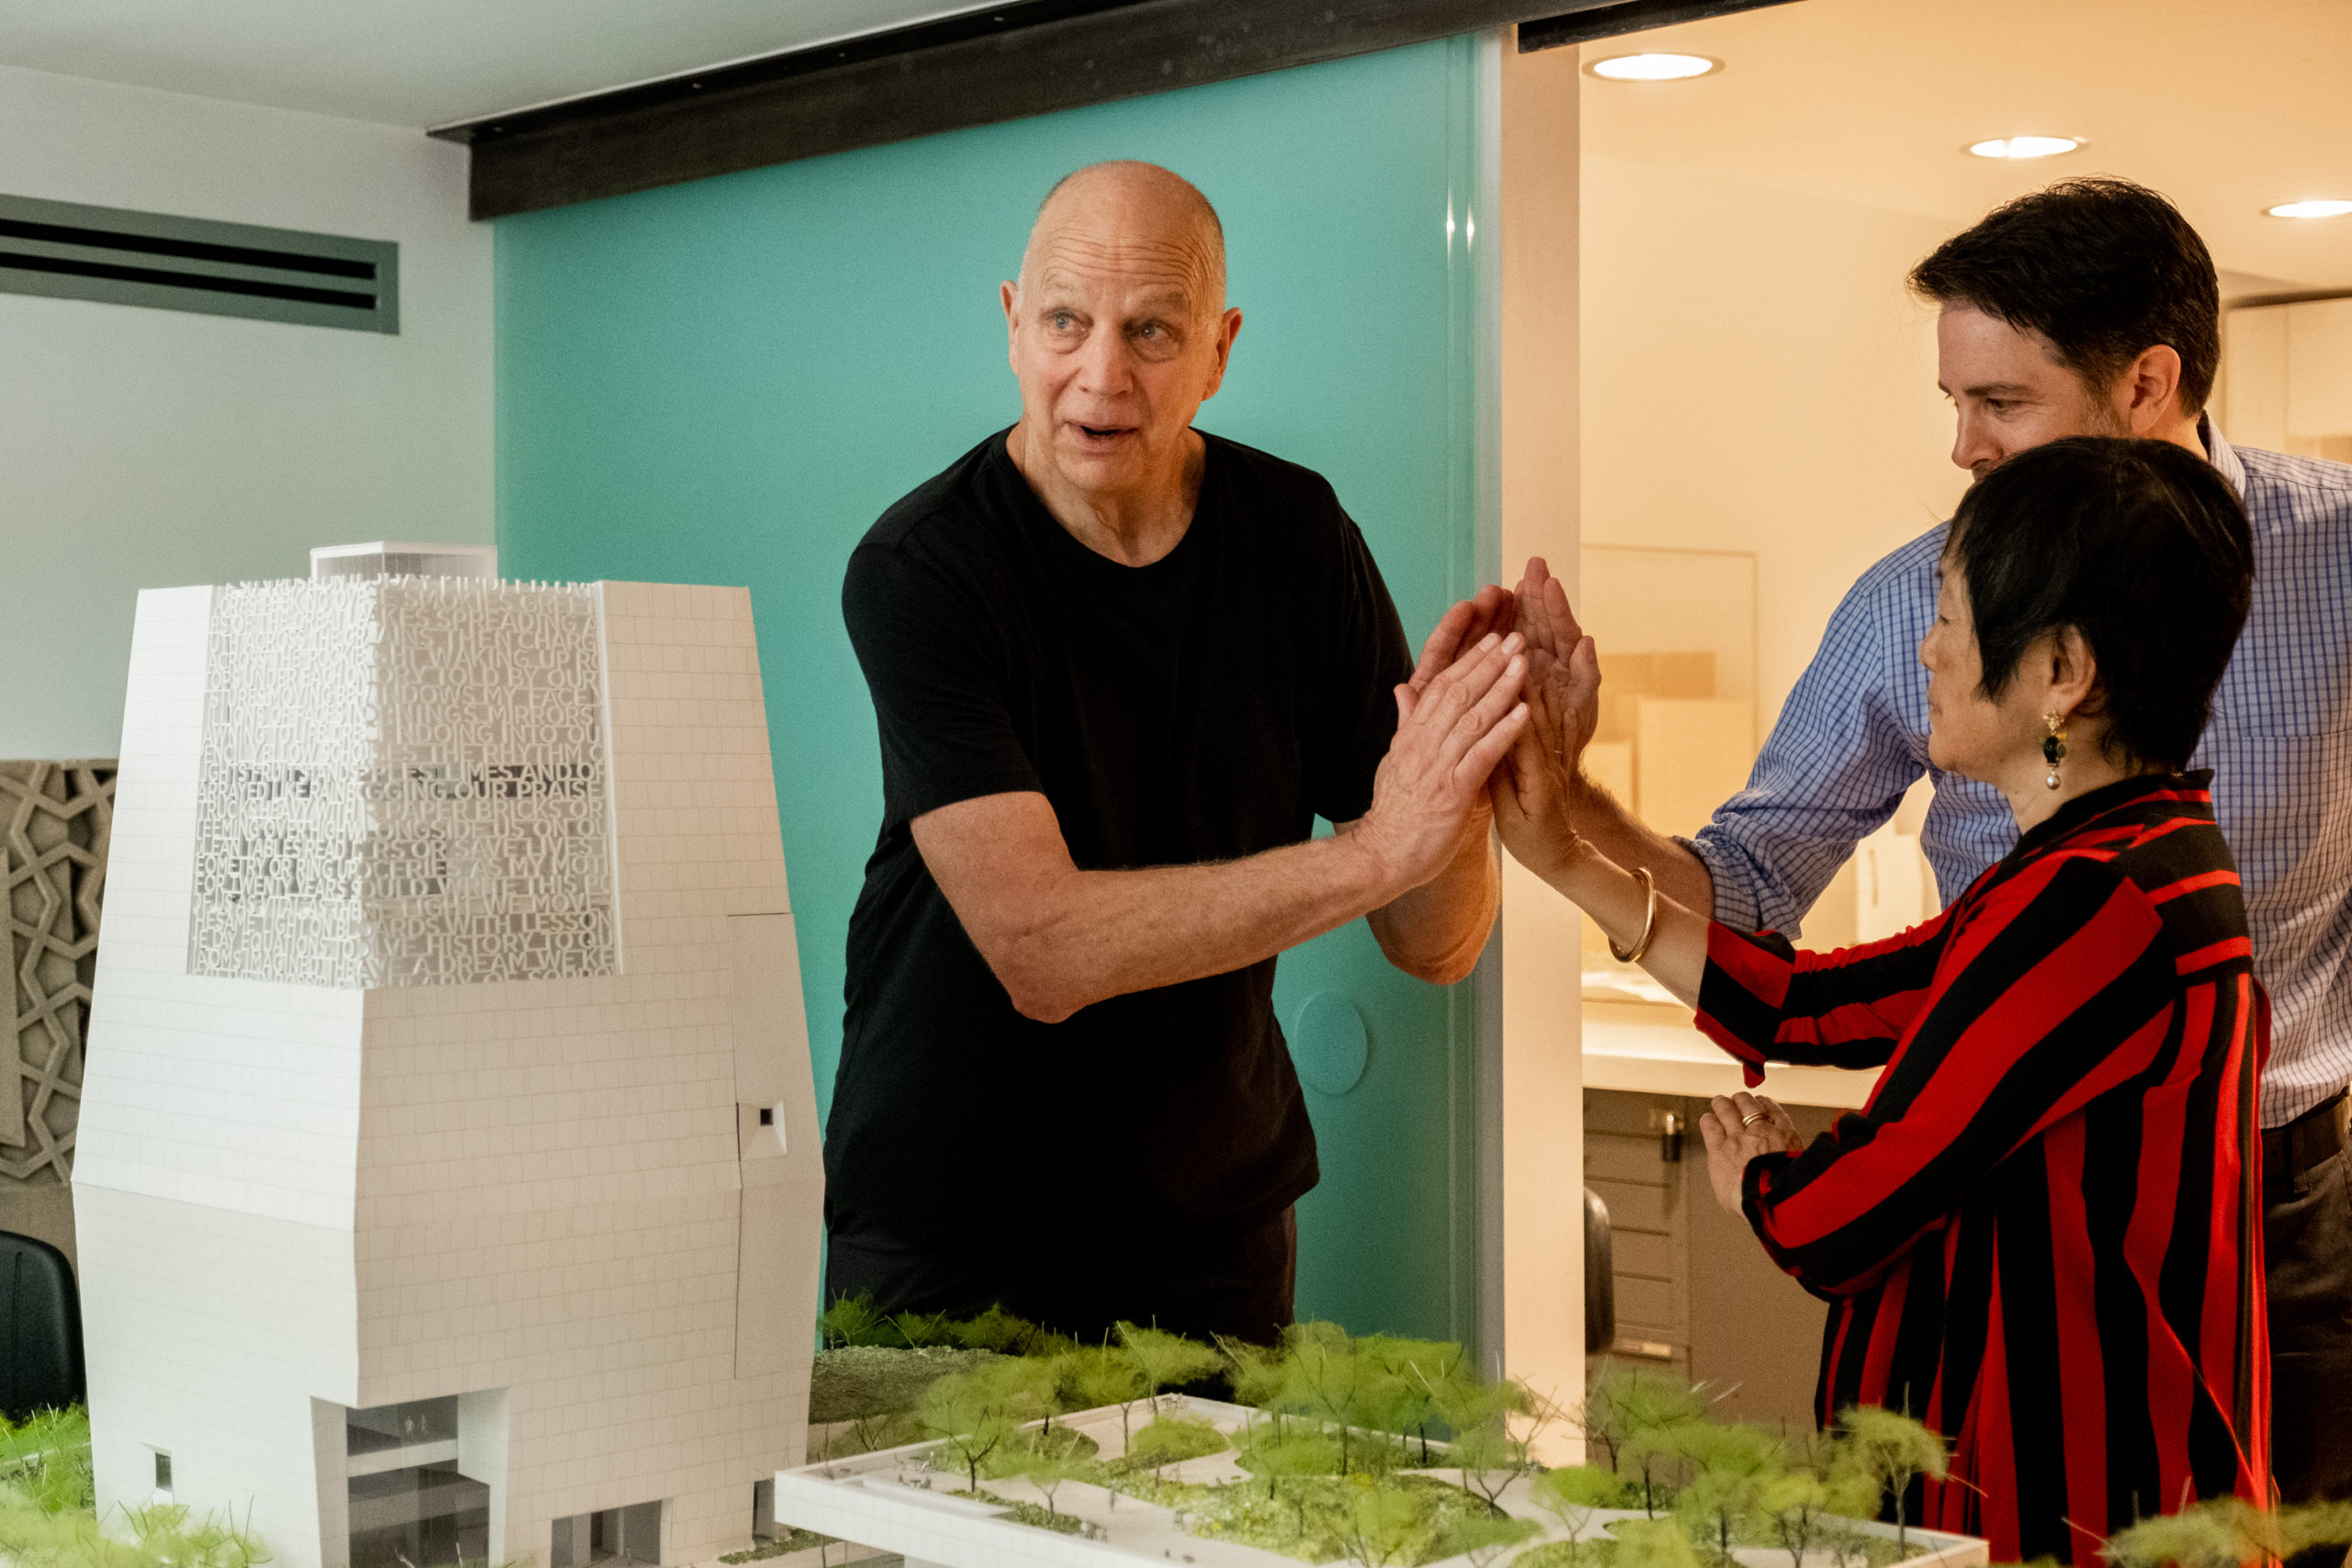 Tod Williams and Billie Tsien place their hands in the same shape as the model of the Obama Presidential Center.